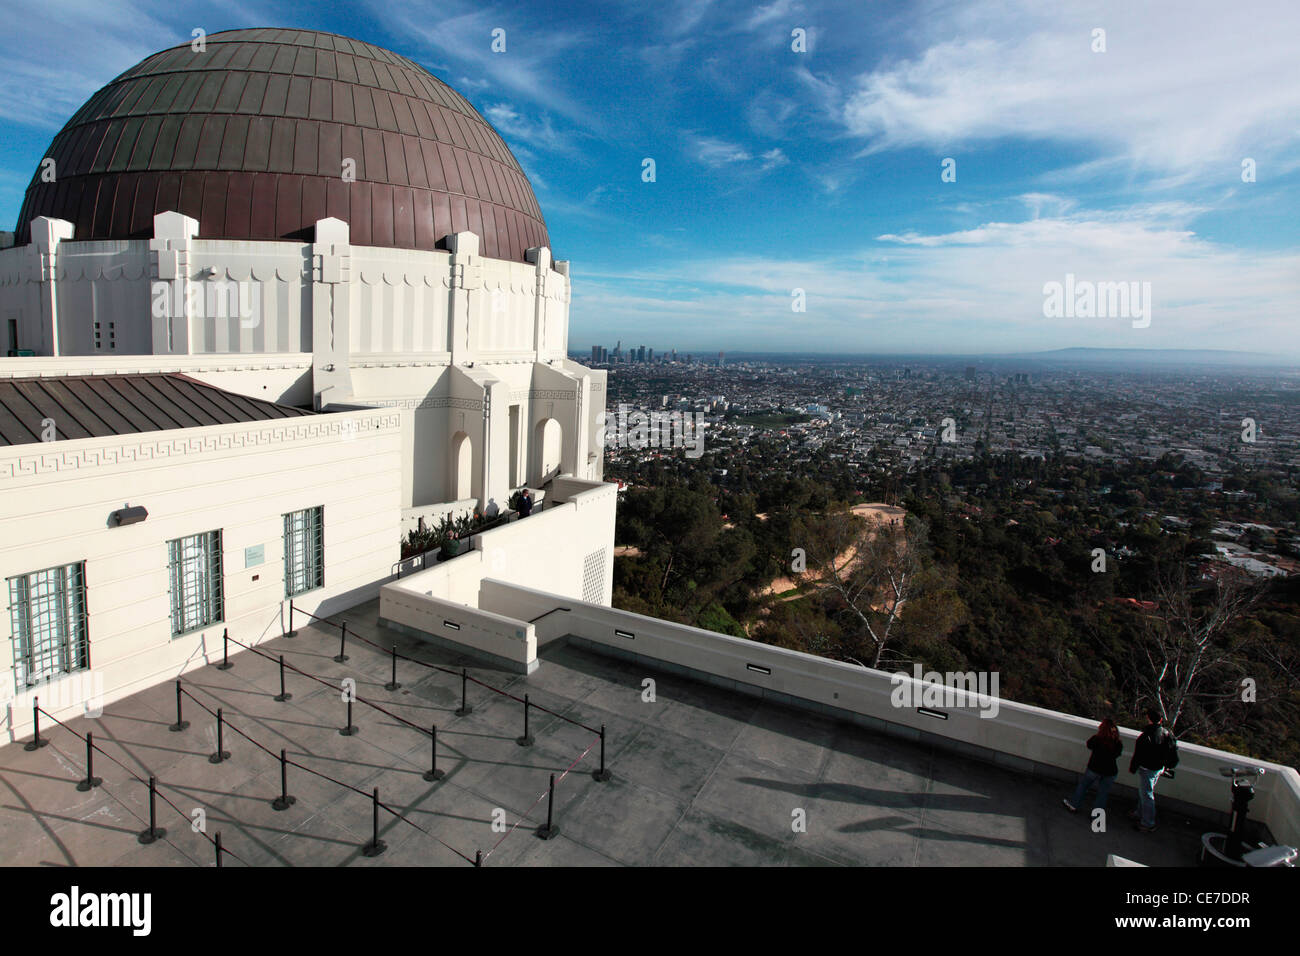 USA, California, Los Angeles, Griffith Observatory with the city of Los Angeles in background - Stock Image